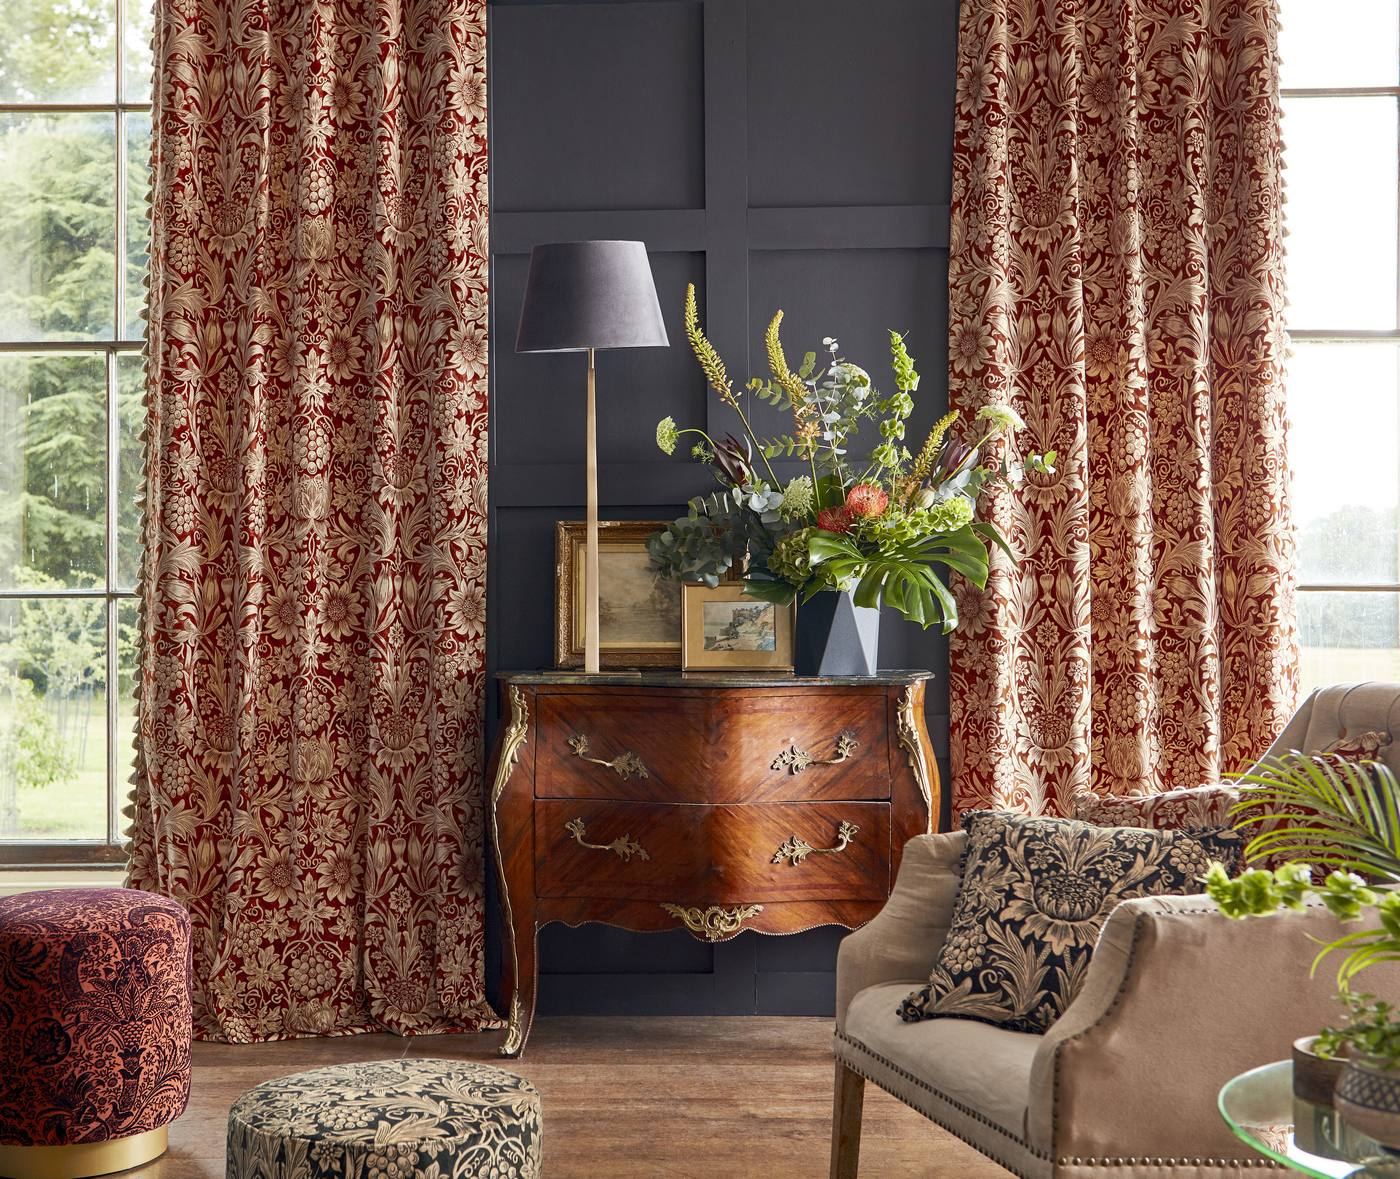 Curtains in York - Wm Morris bespoke curtains in Morris Rouen Velvet - buy from Fabric Gallery & Interiors